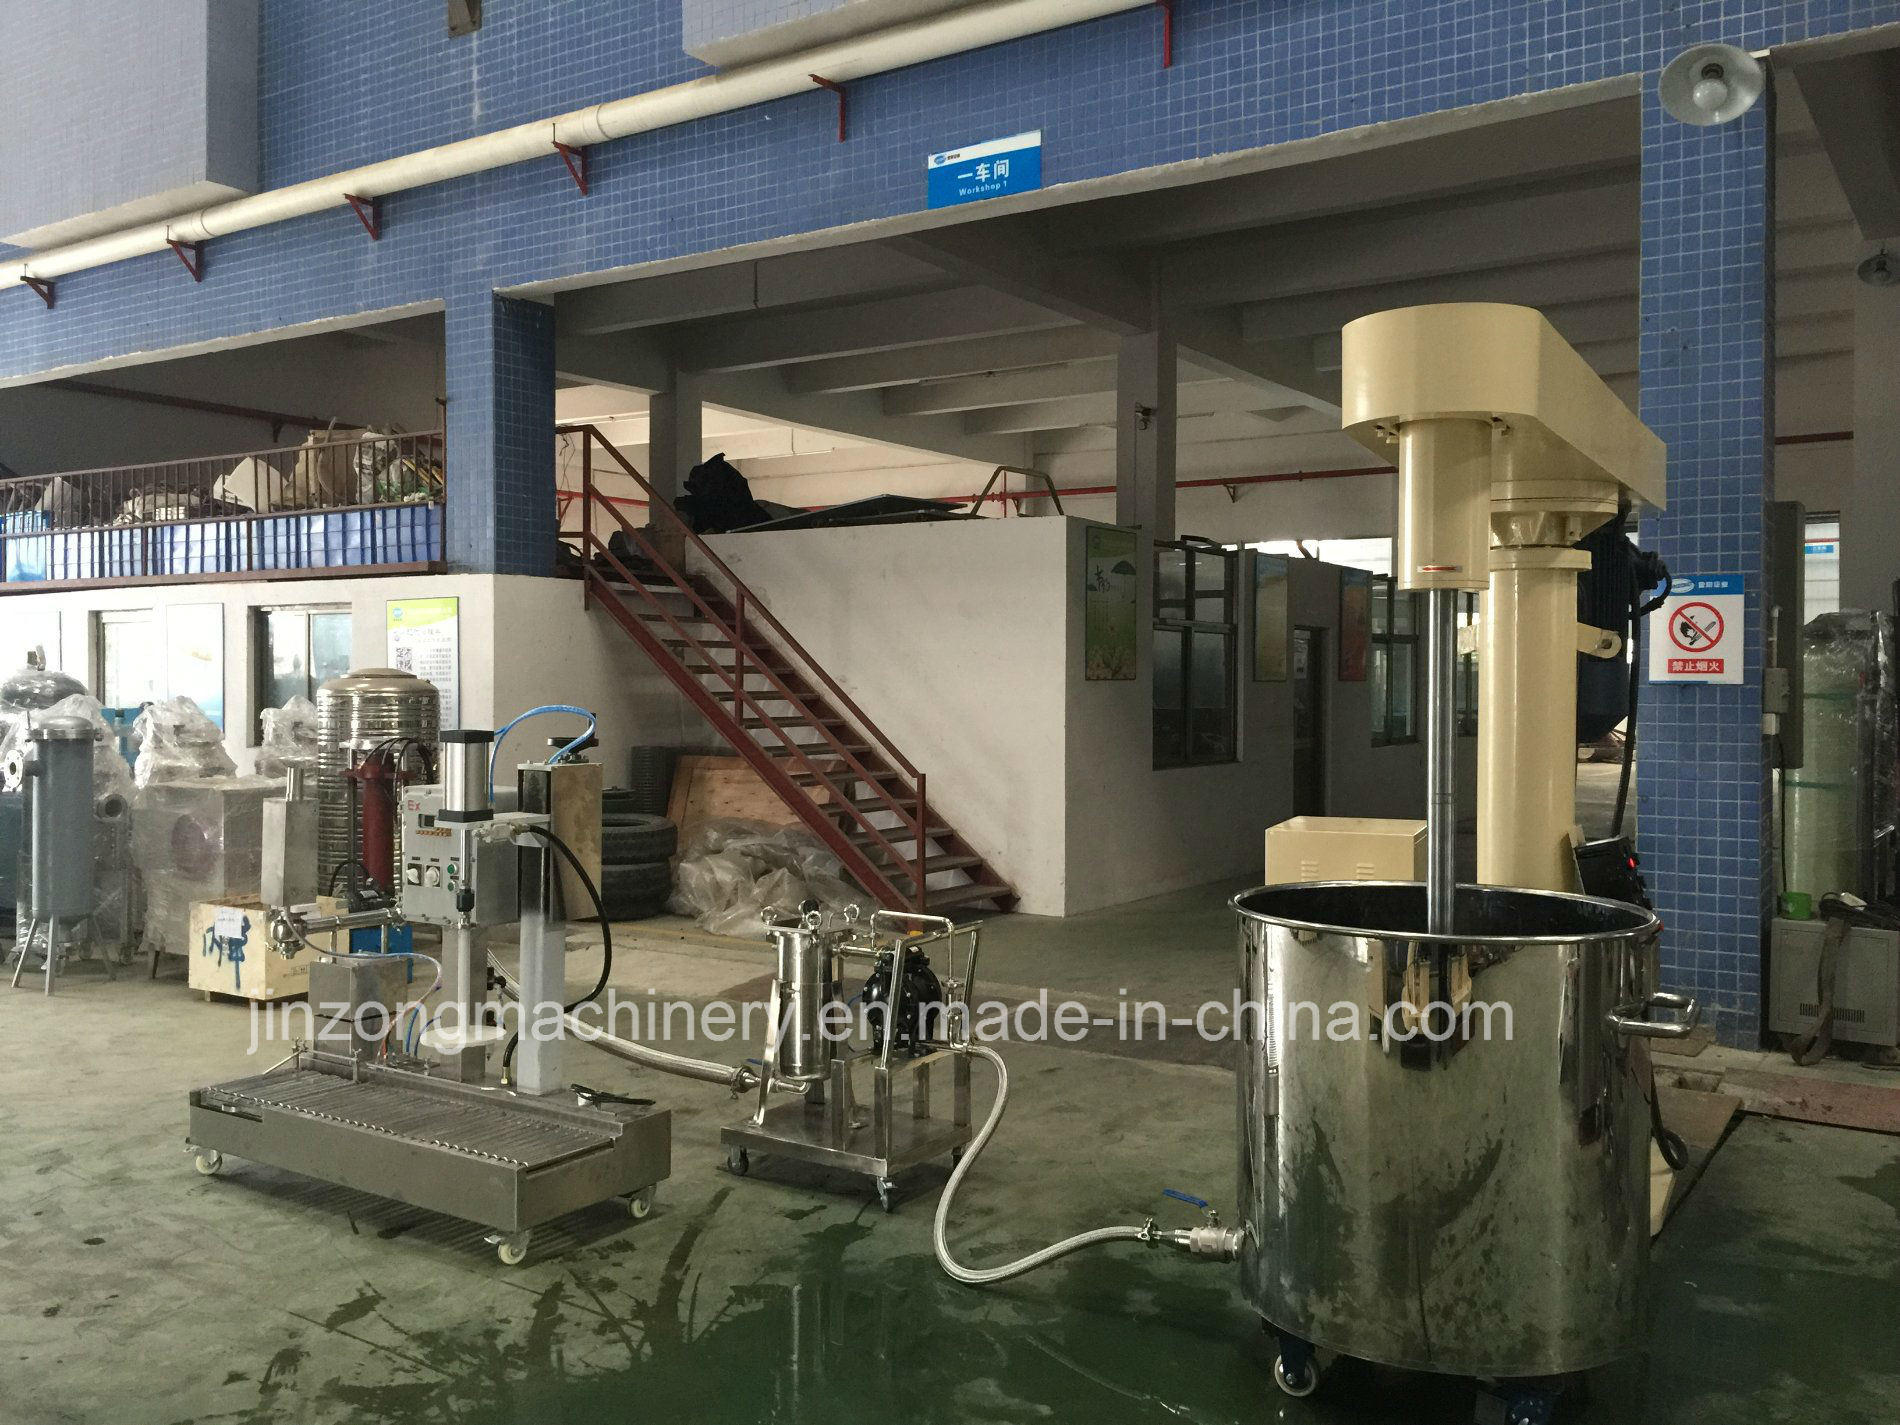 Fully Explosion Proof Mixer for Both Water Base and Solvent Base Paints&Coatings